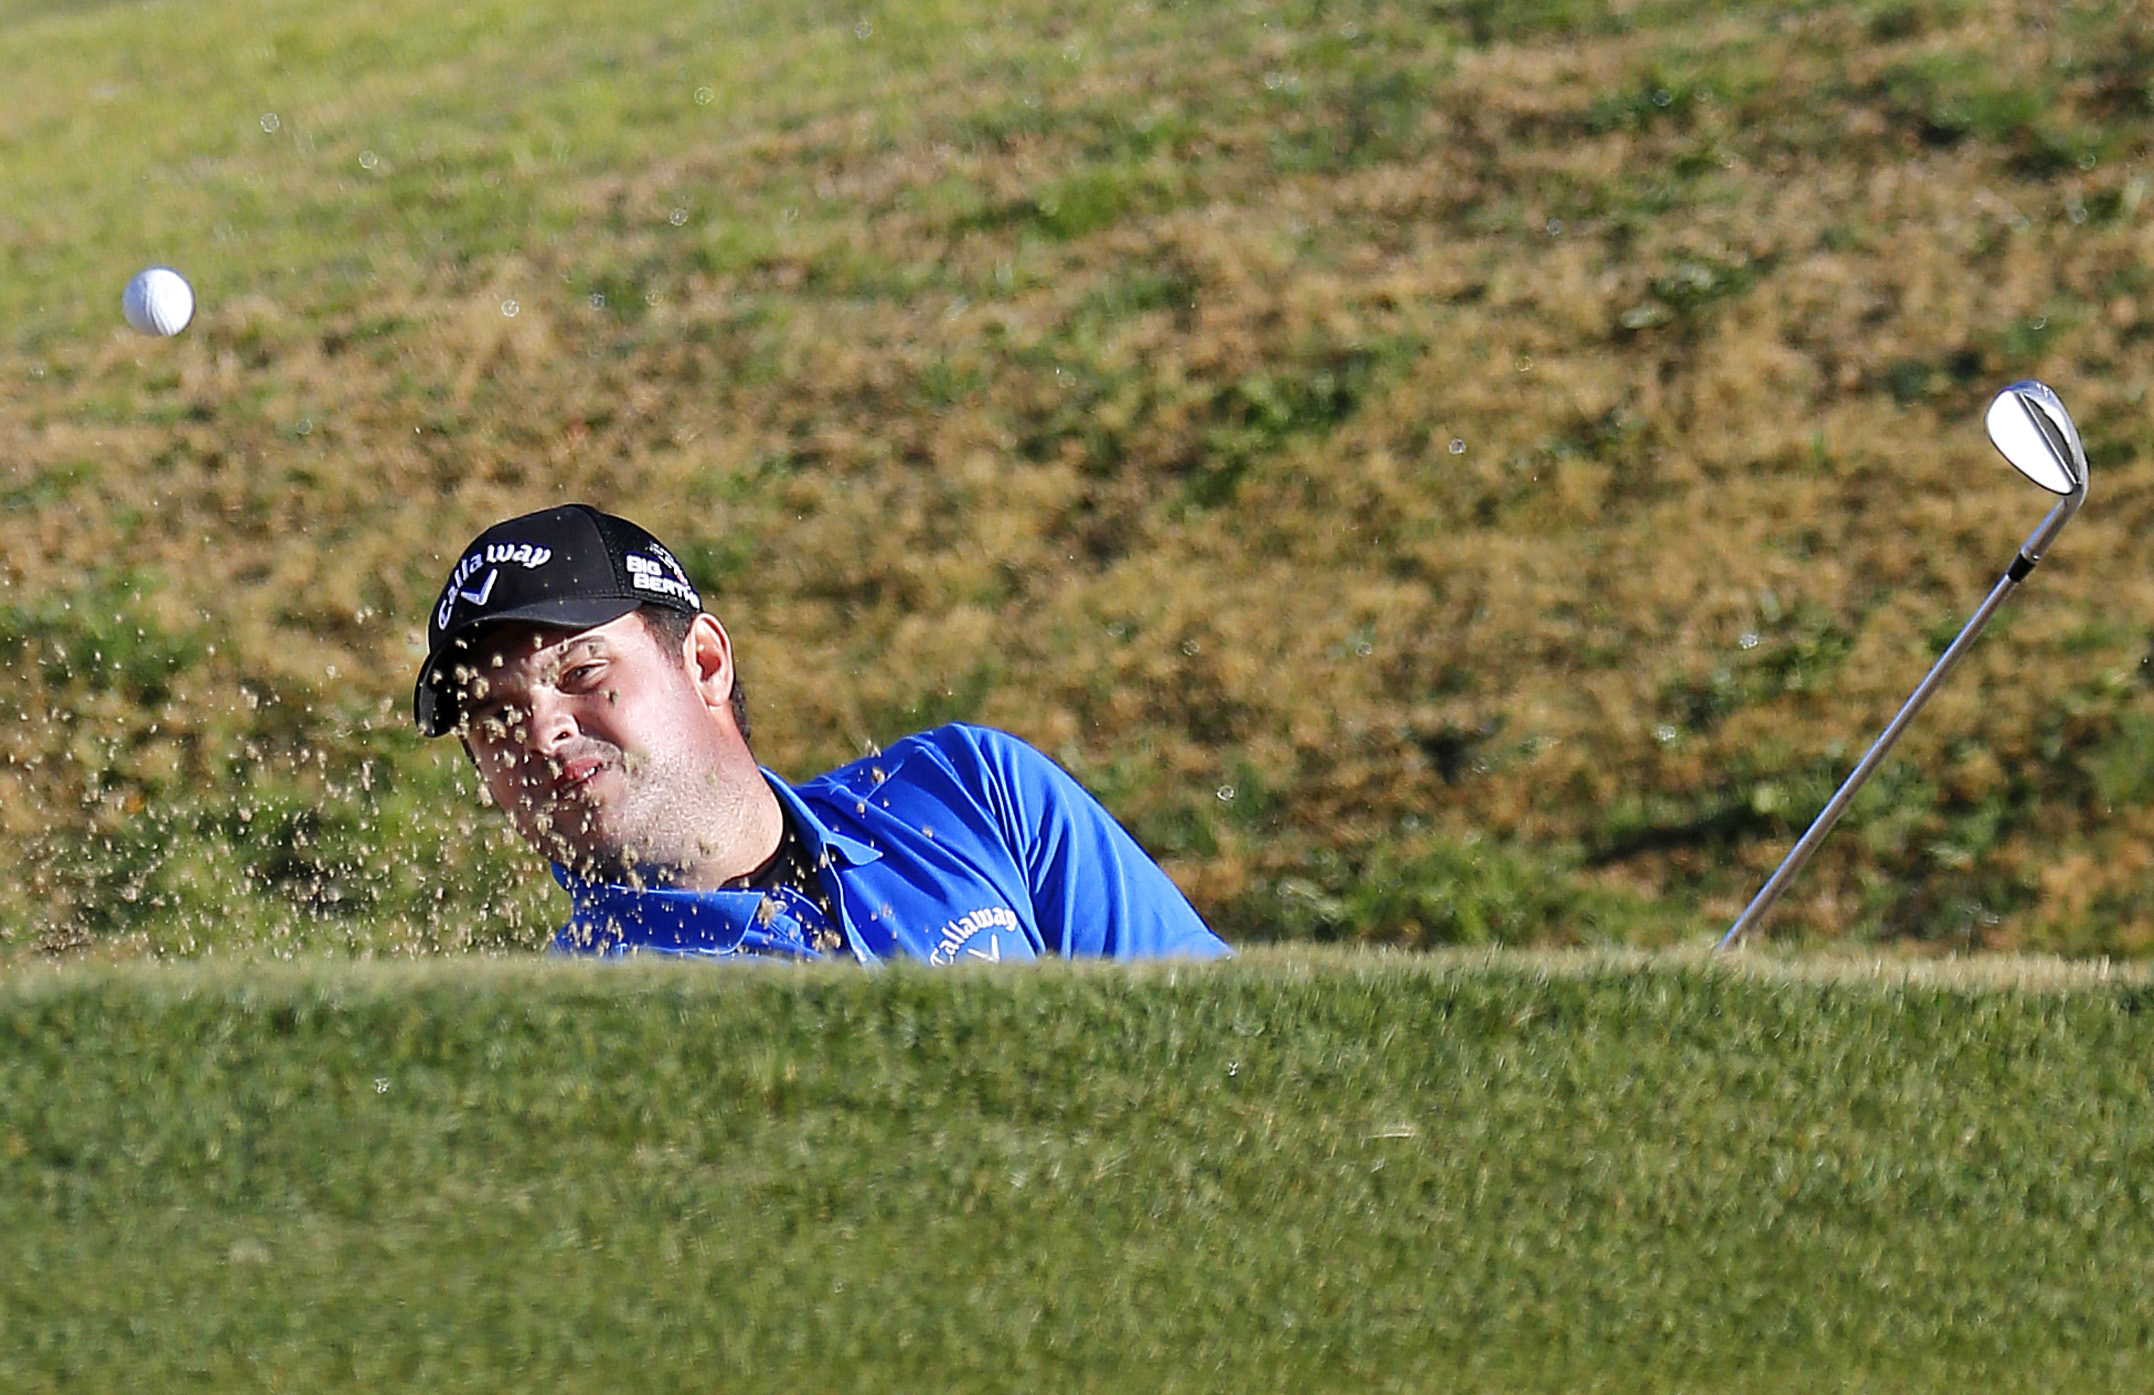 Patrick Reed hits out of a bunker on the 11th hole during the third round of the Humana Challenge PGA golf tournament on the Nicklaus Private course at PGA West, Saturday, Jan. 18, 2014, in La Quinta, Calif